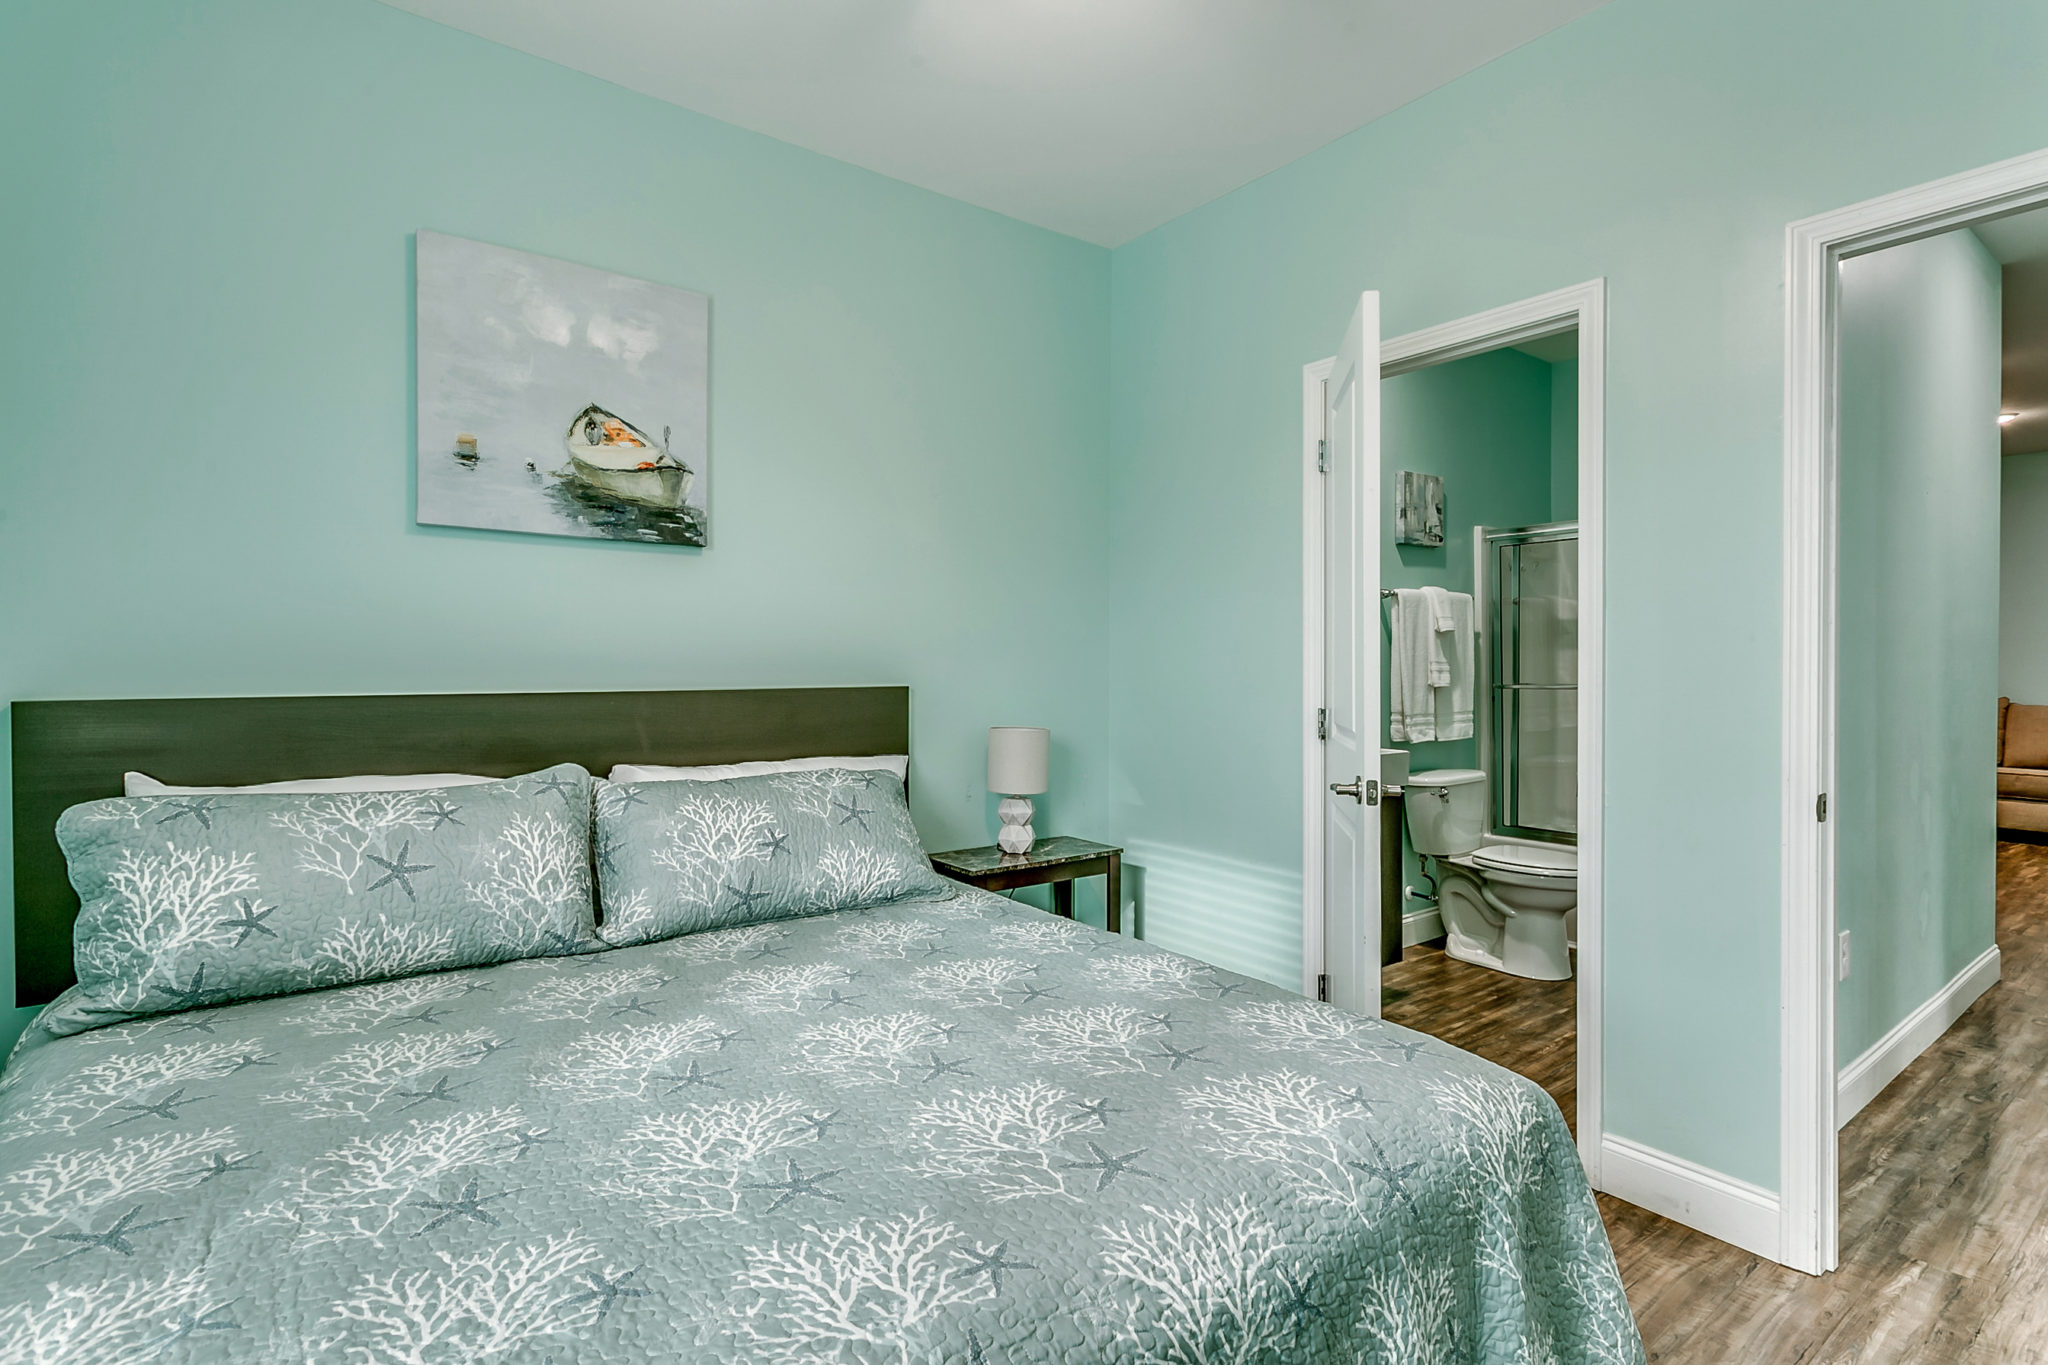 204 54th Ave - Unit A bedroom.